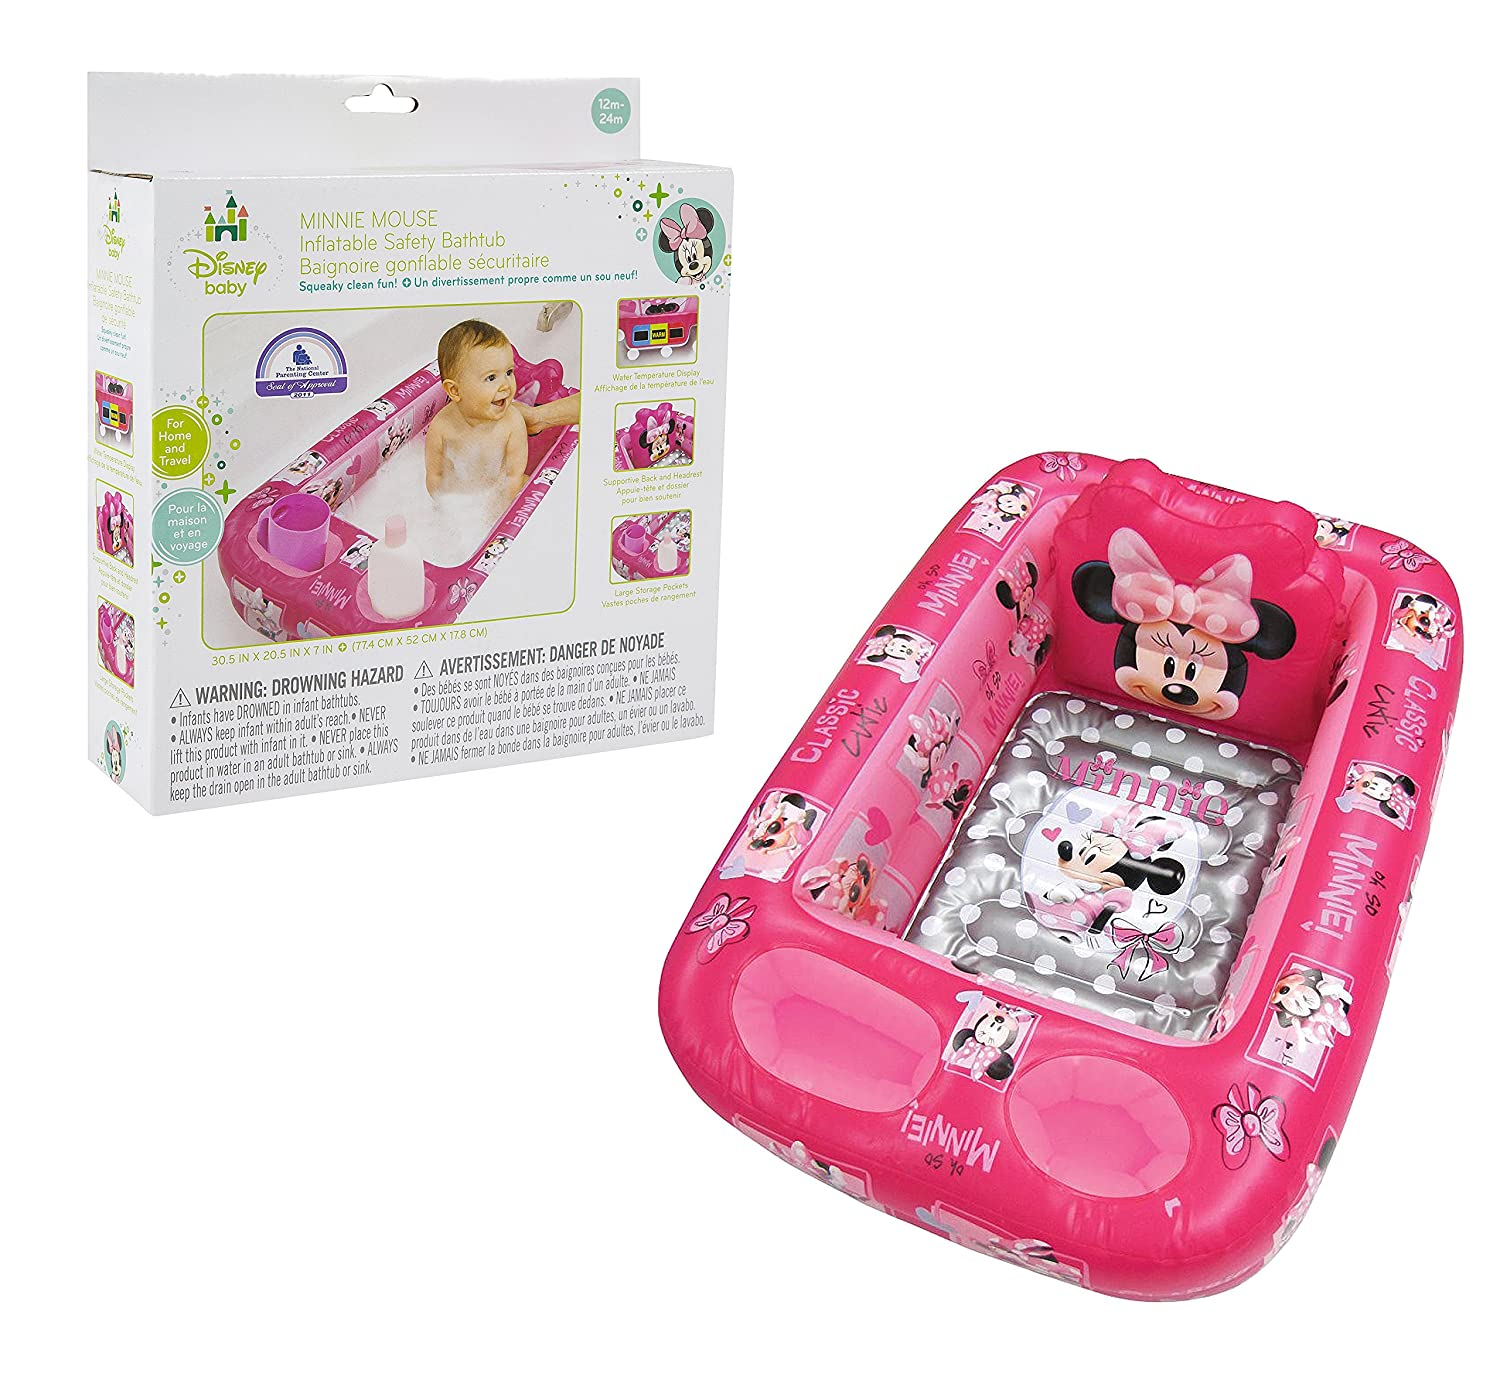 Amazon.com : Disney Minnie Mouse Inflatable Safety Bathtub, Pink ...